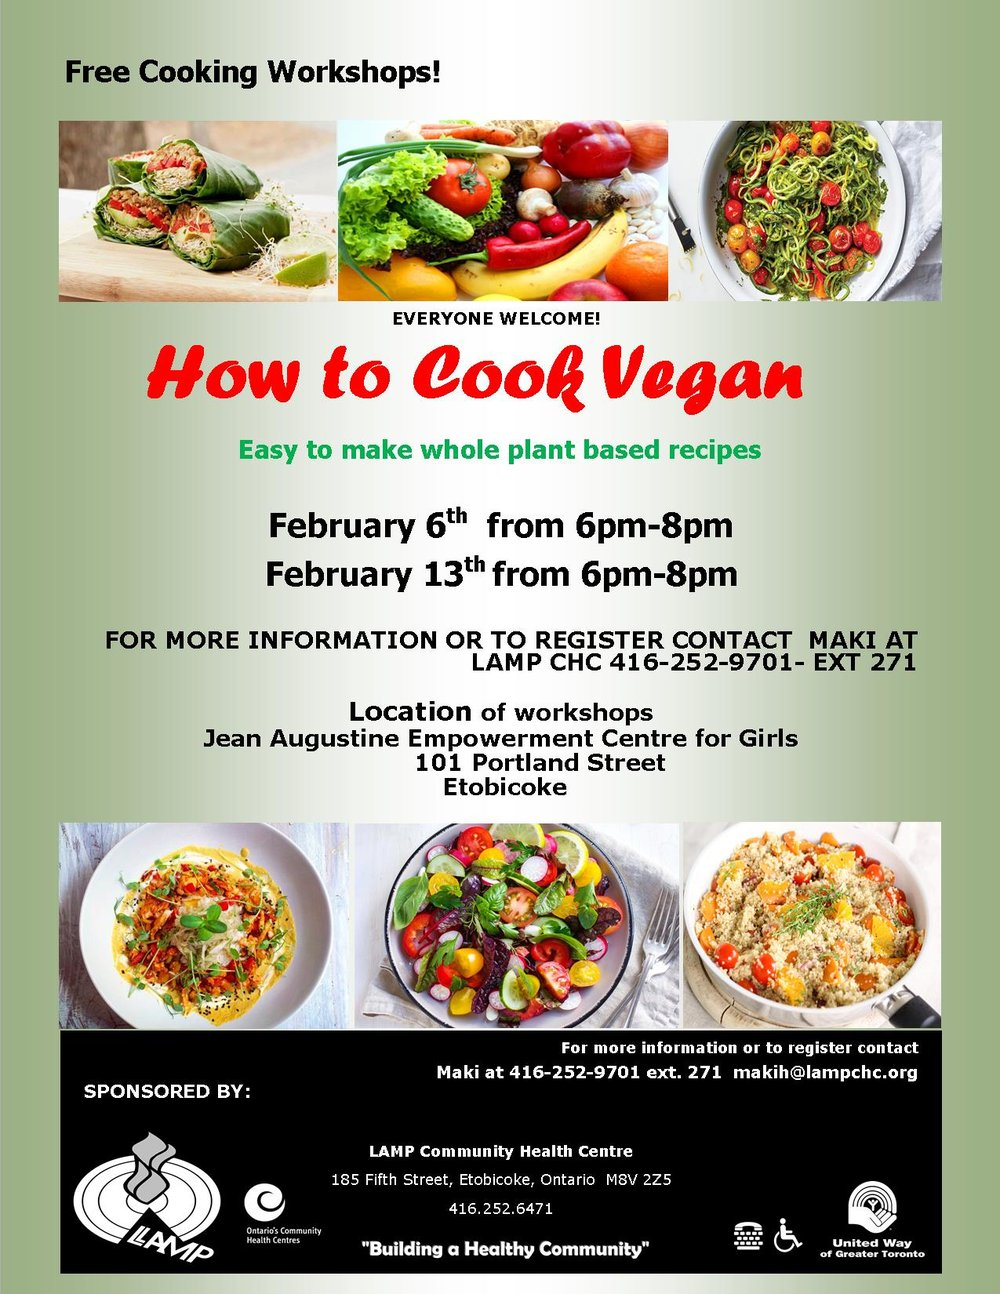 How to Cook Vegan flyer.jpg